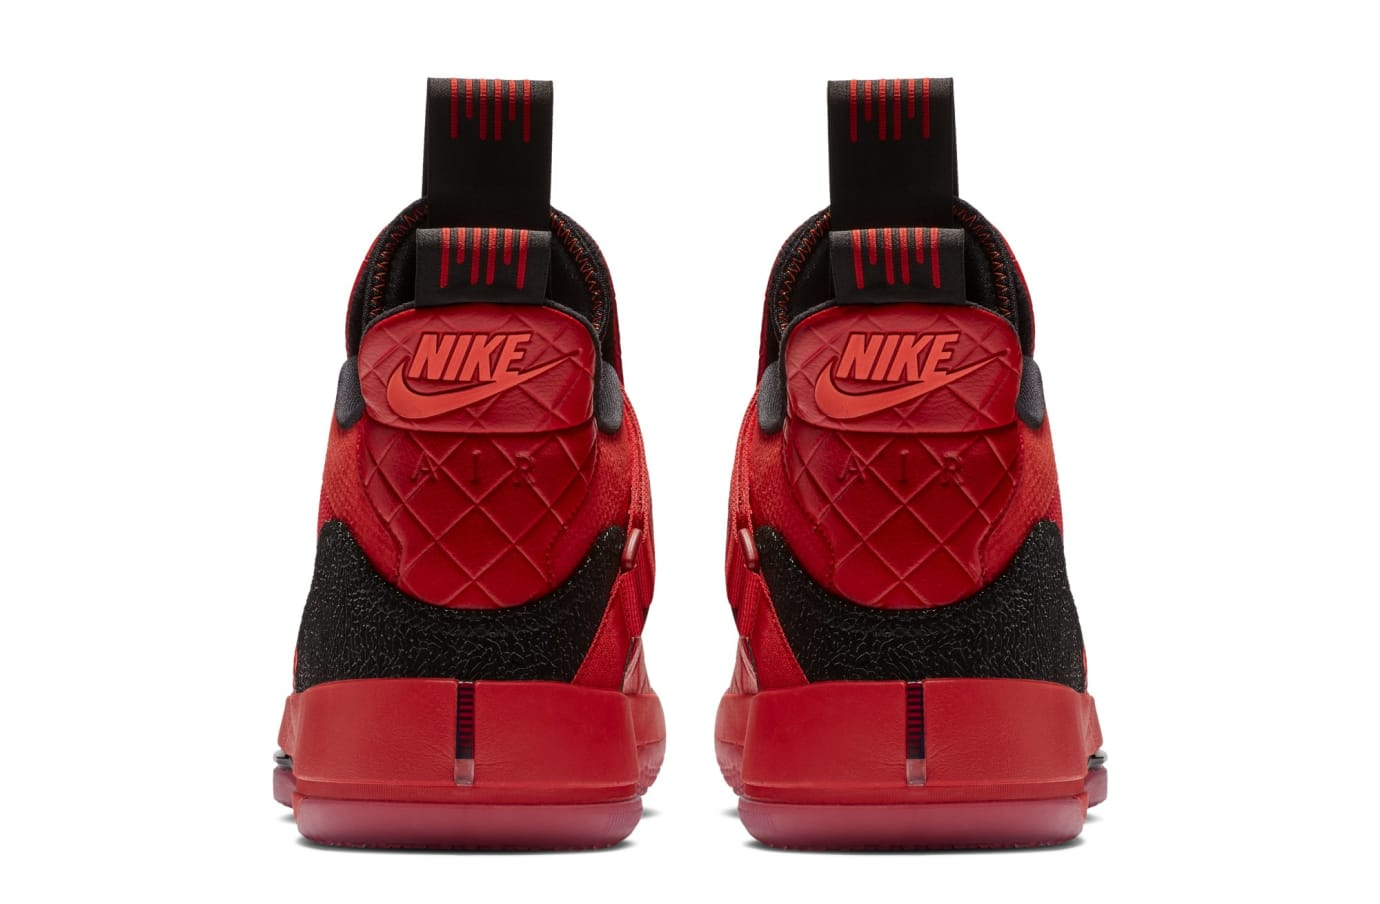 a22af472b48554 Image via Nike Air Jordan 33  University Red  AQ8830-600 (Heel)